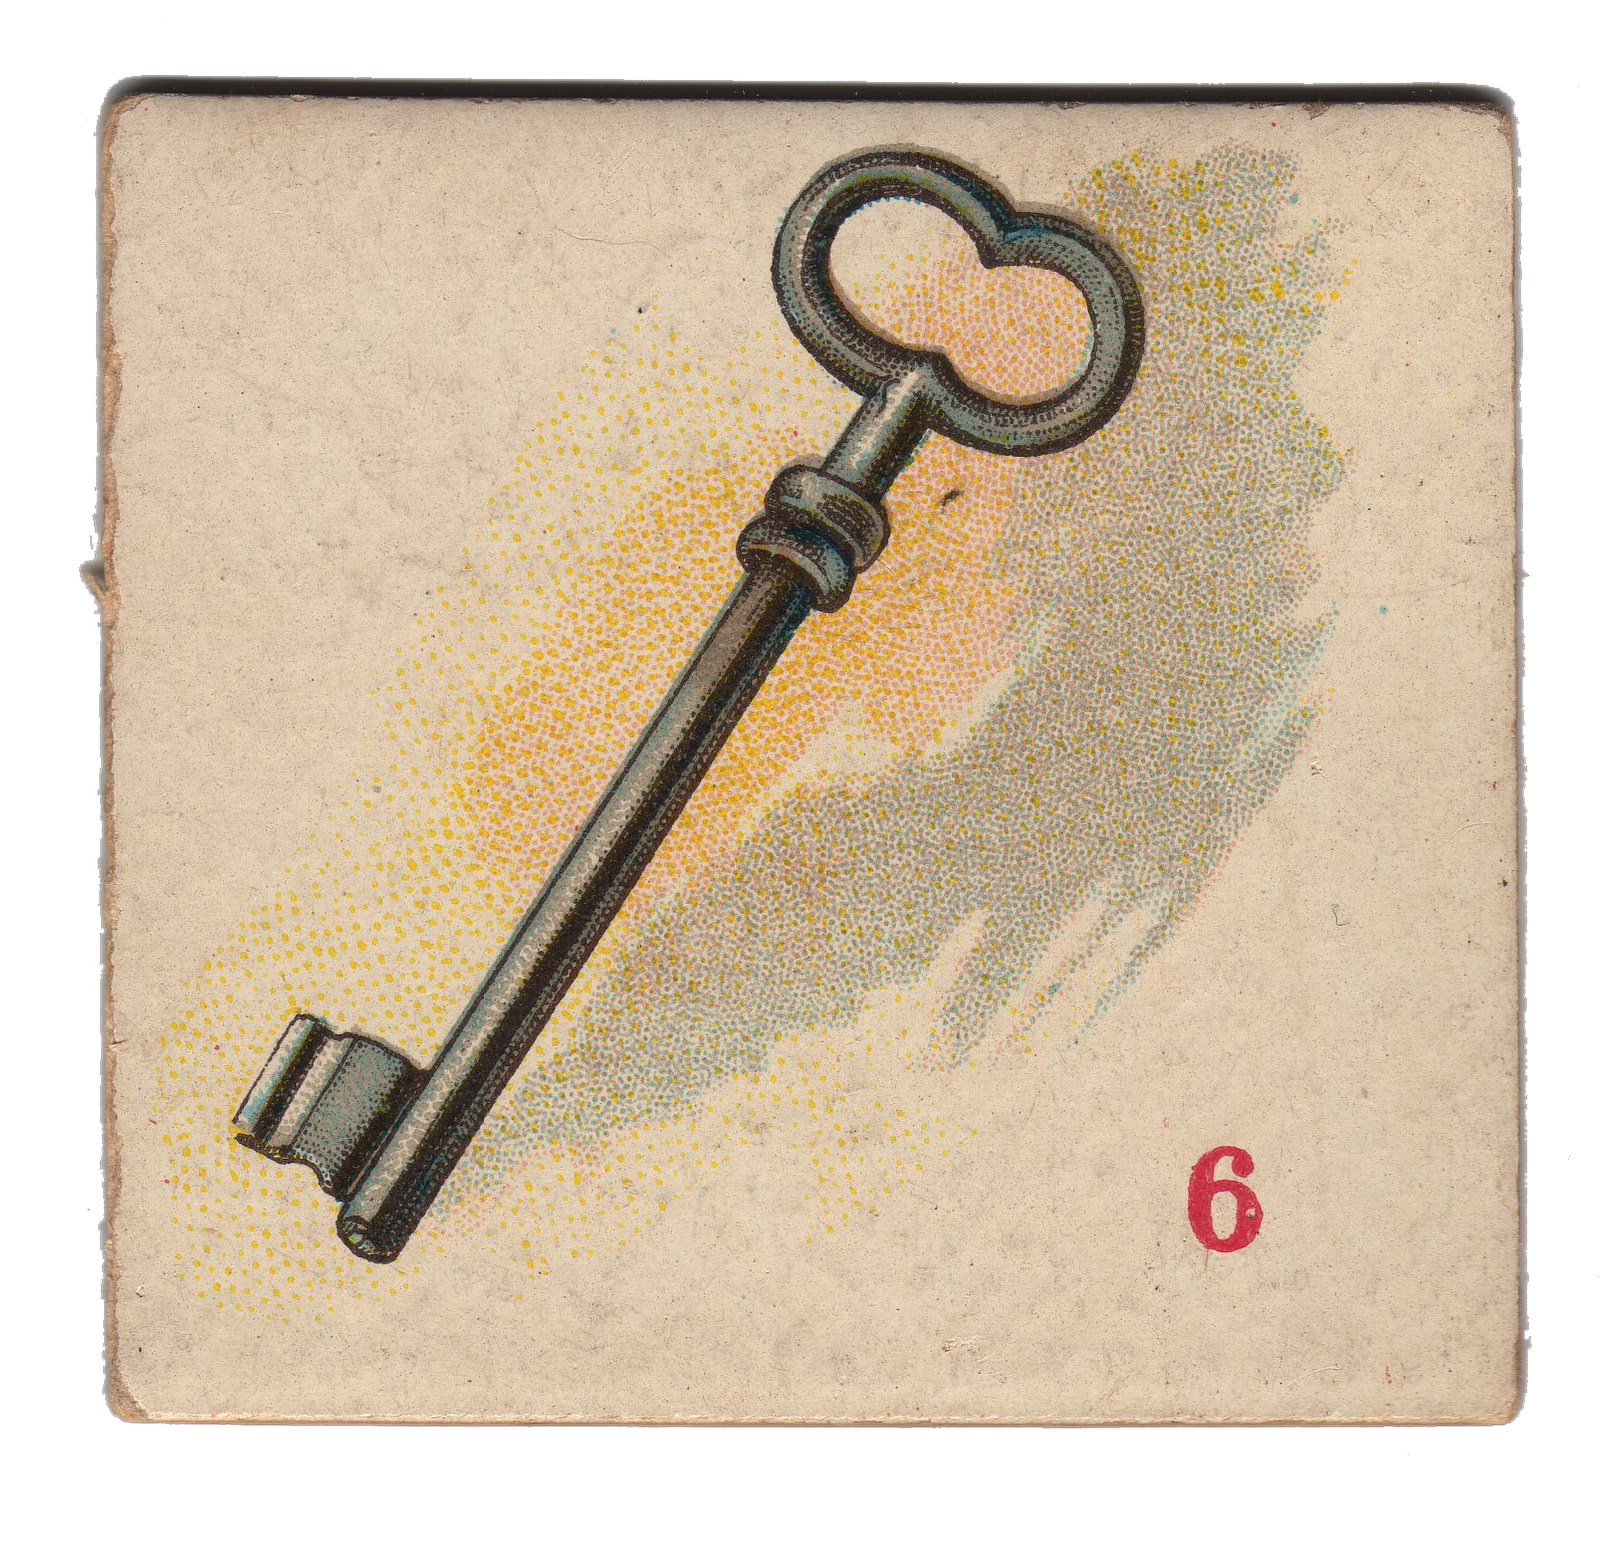 Free Vintage Clip Art   Skeleton Key   The Graphics Fairy